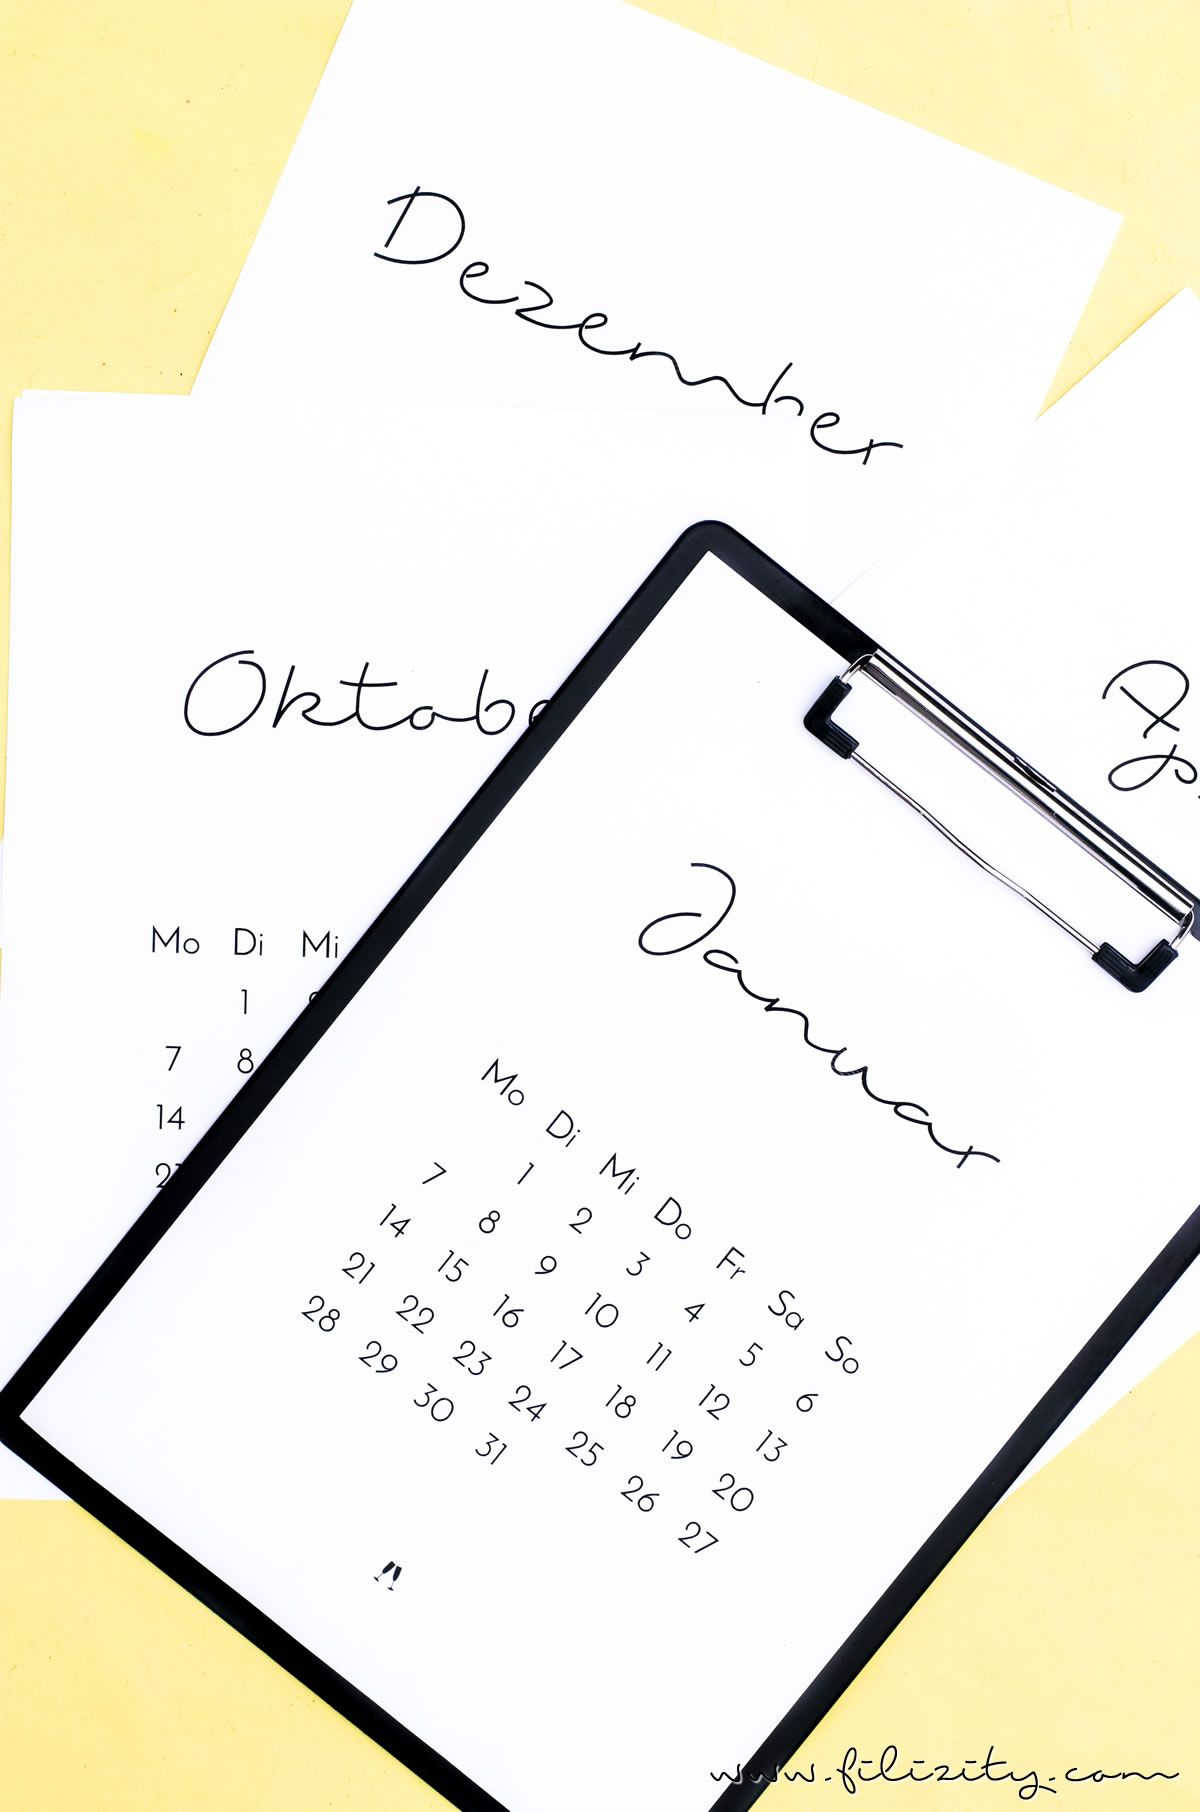 Home Office Feiertage Druckvorlage Minimalistischer Kalender 2019 Home Decor